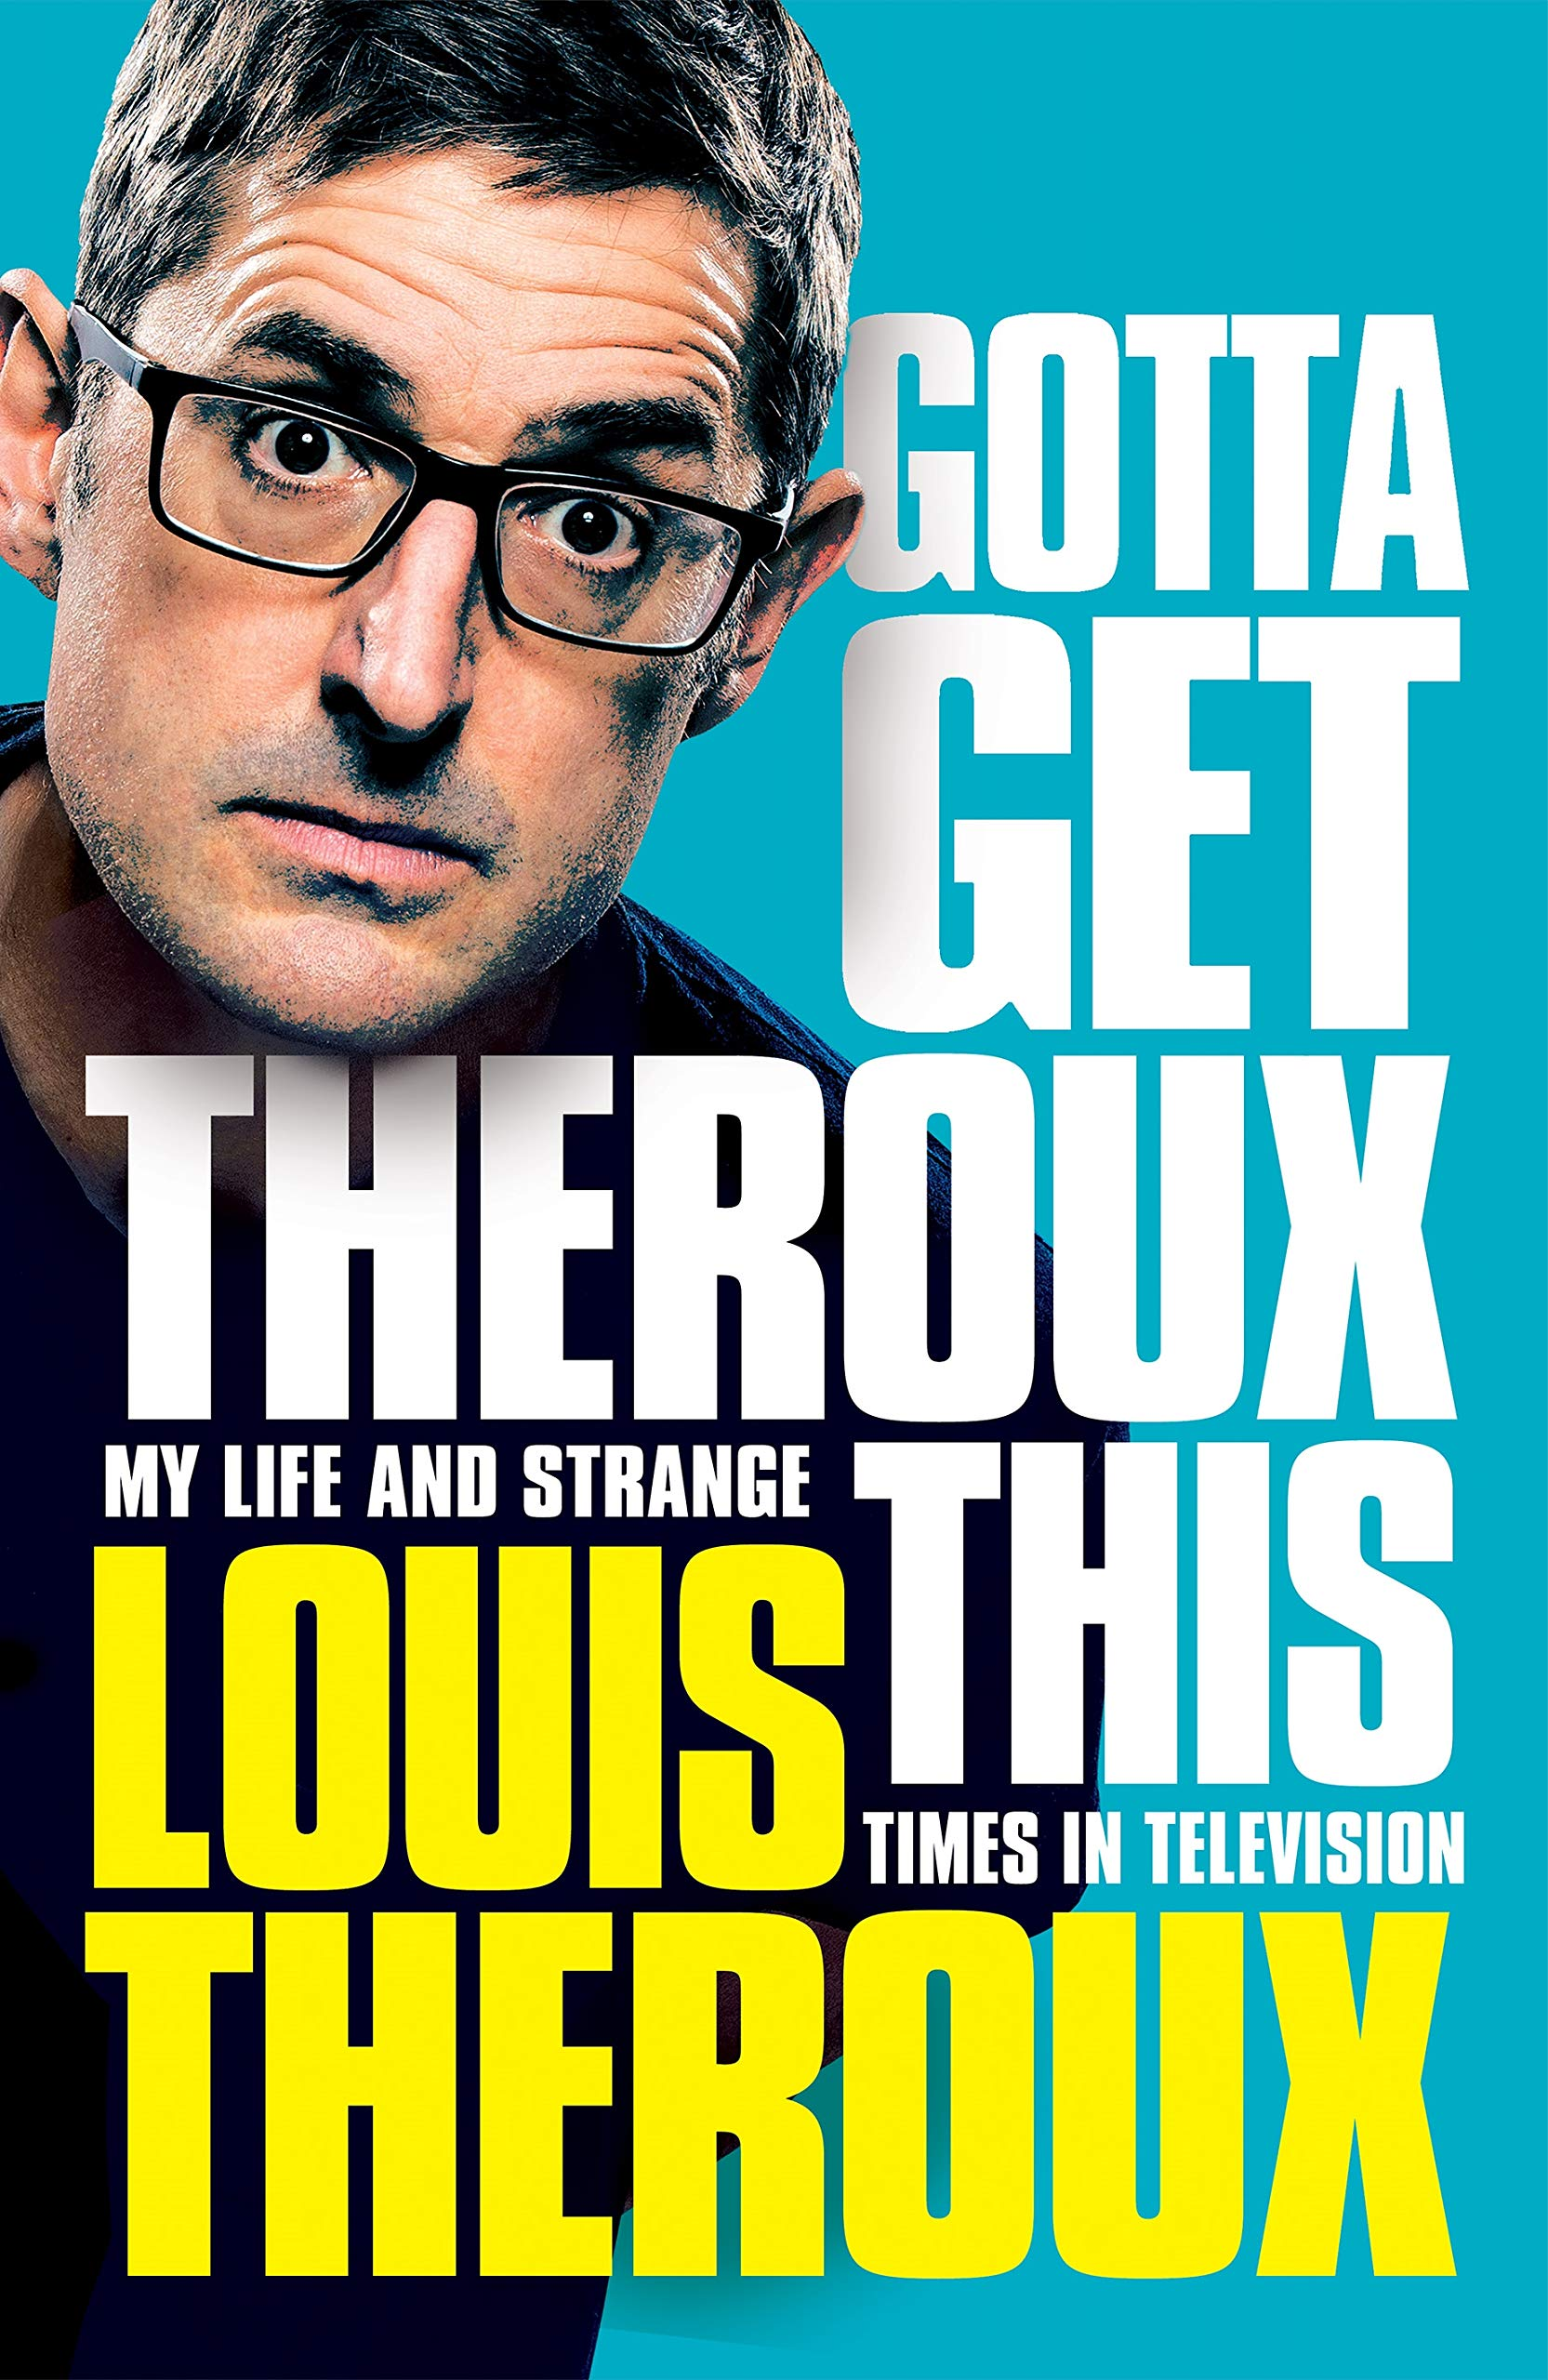 Gotta Get Theroux This: My life and strange times in television ...